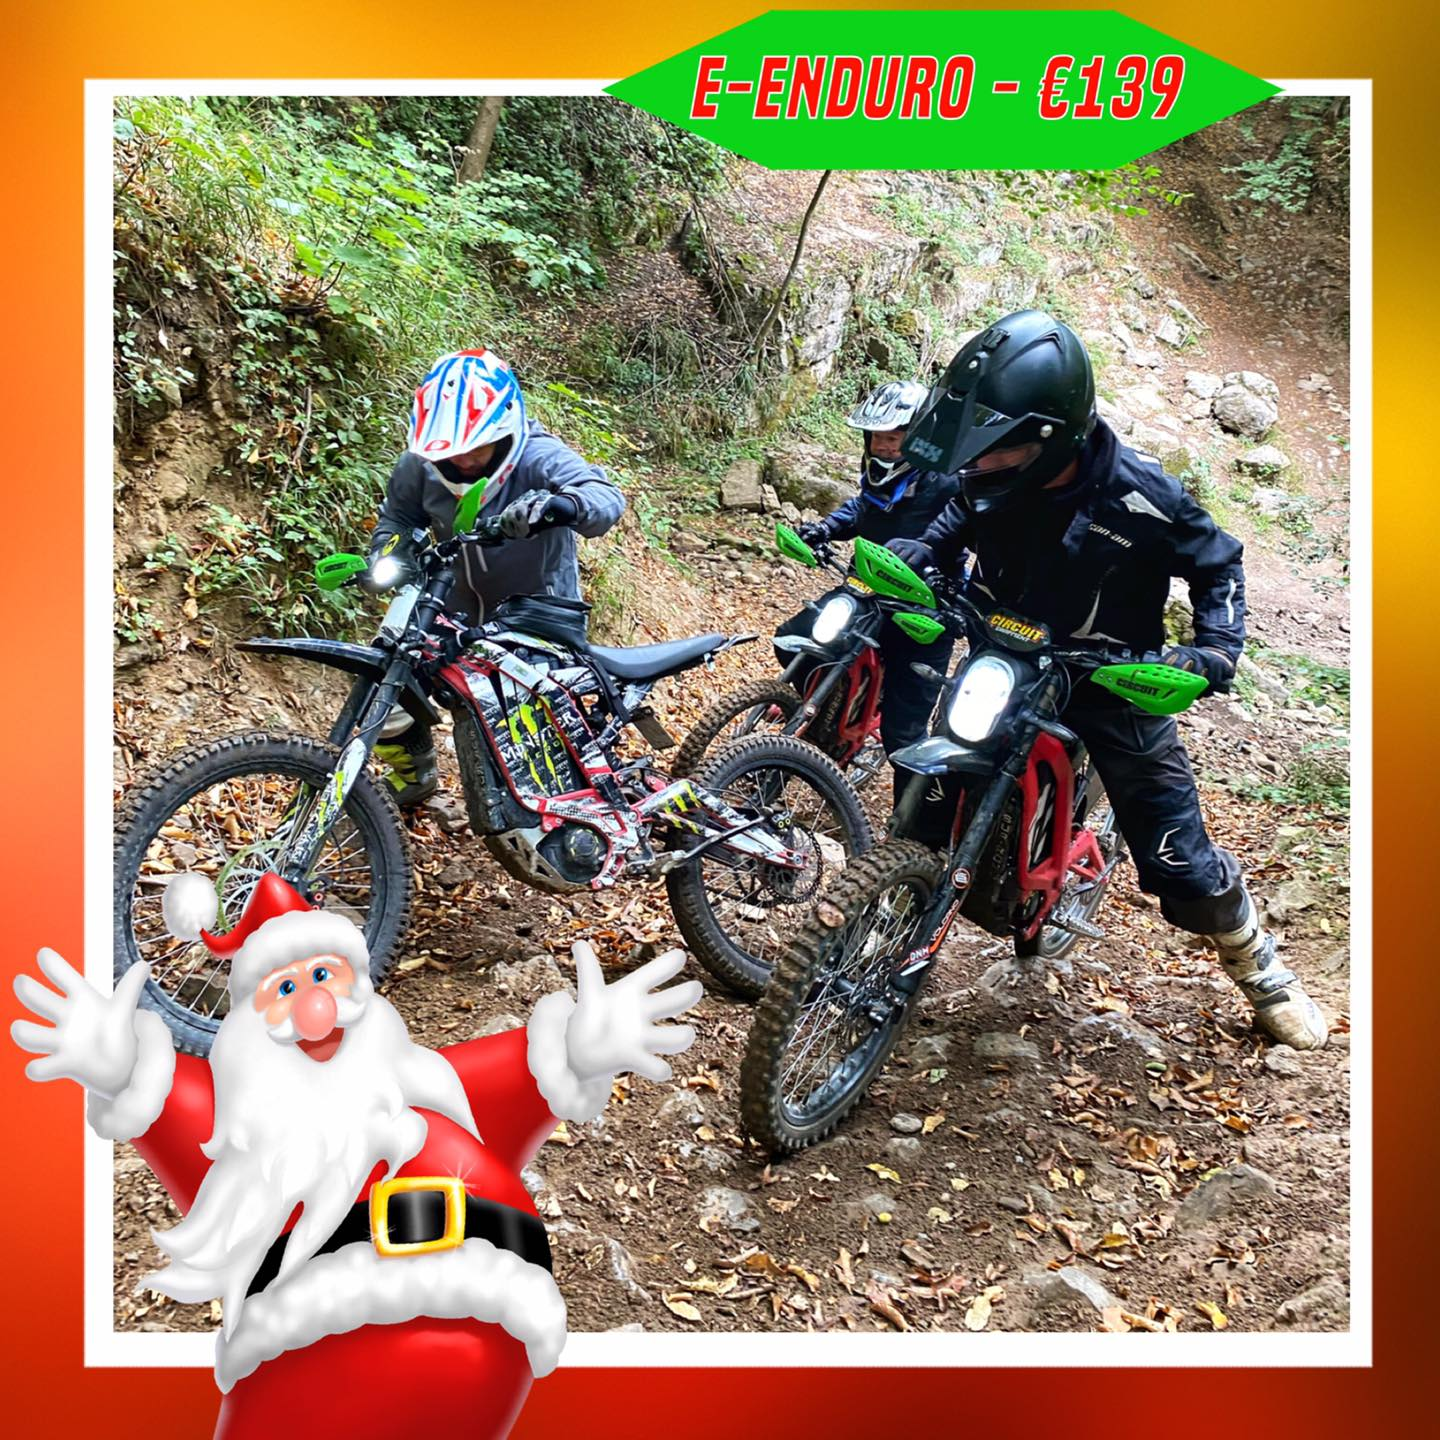 Kerst-initiaties Bilstain Endurofun 41 Surron